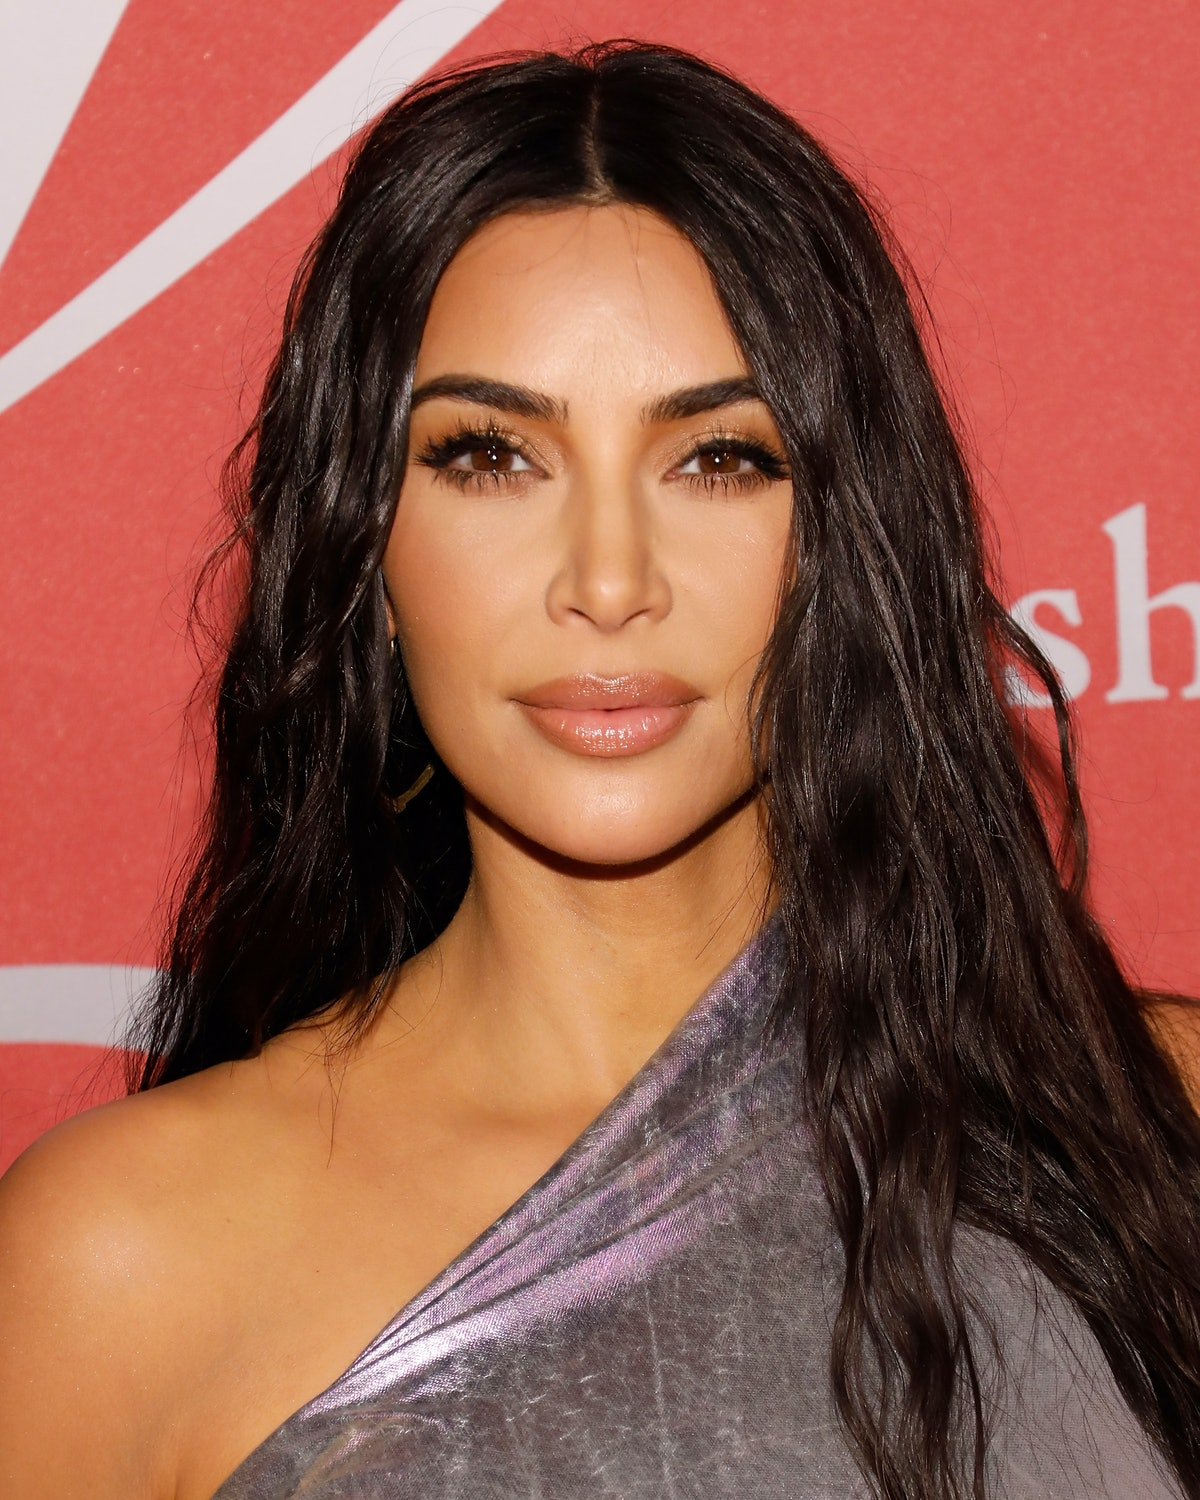 These tweets about Kim Kardashian's leather New York Fashion Week show how shocked fans are.